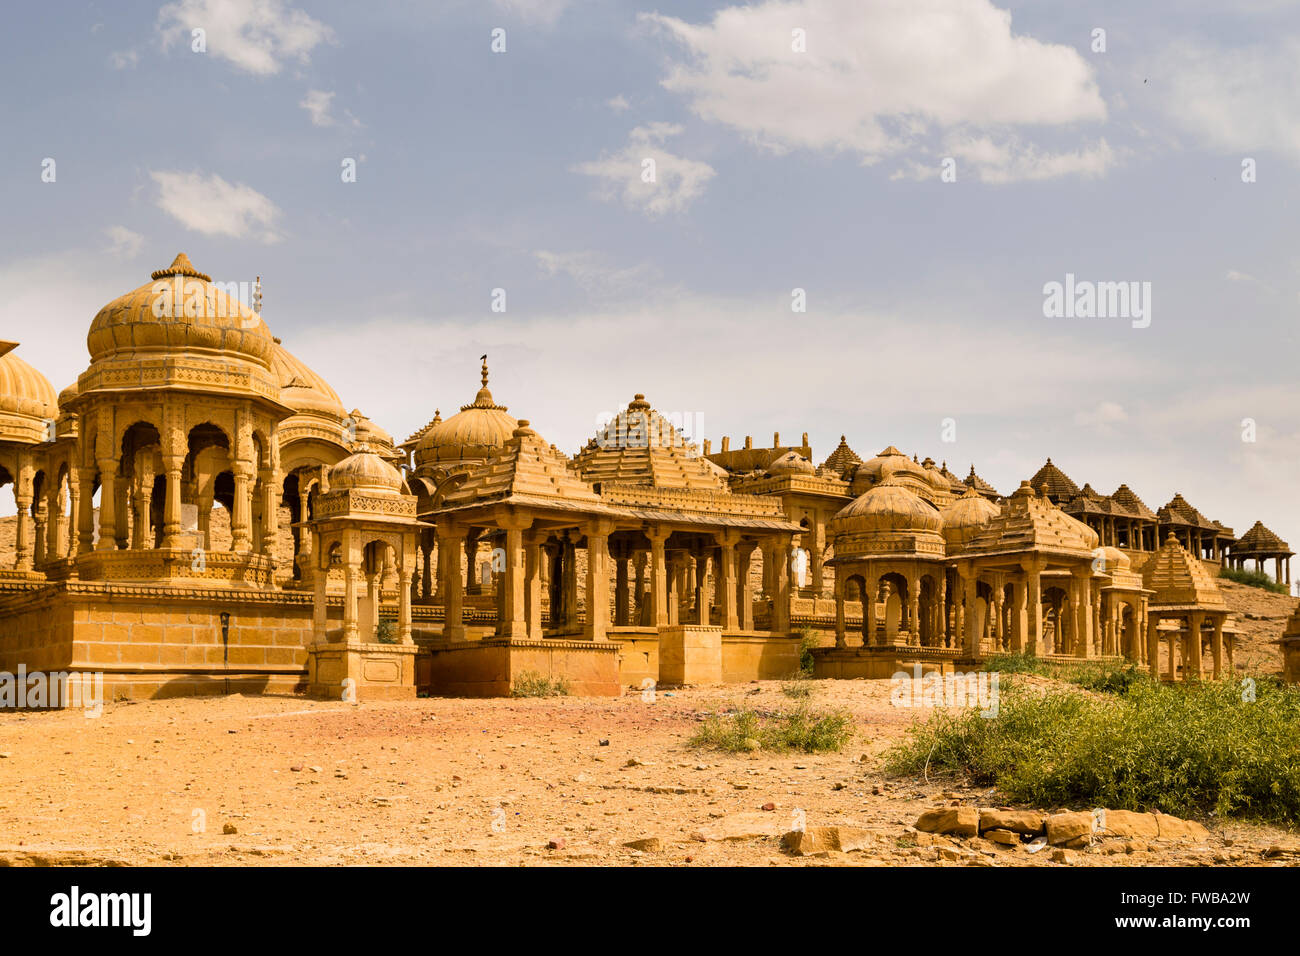 Bada Bagh, Jaisalmer, Rajasthan, India Stock Photo